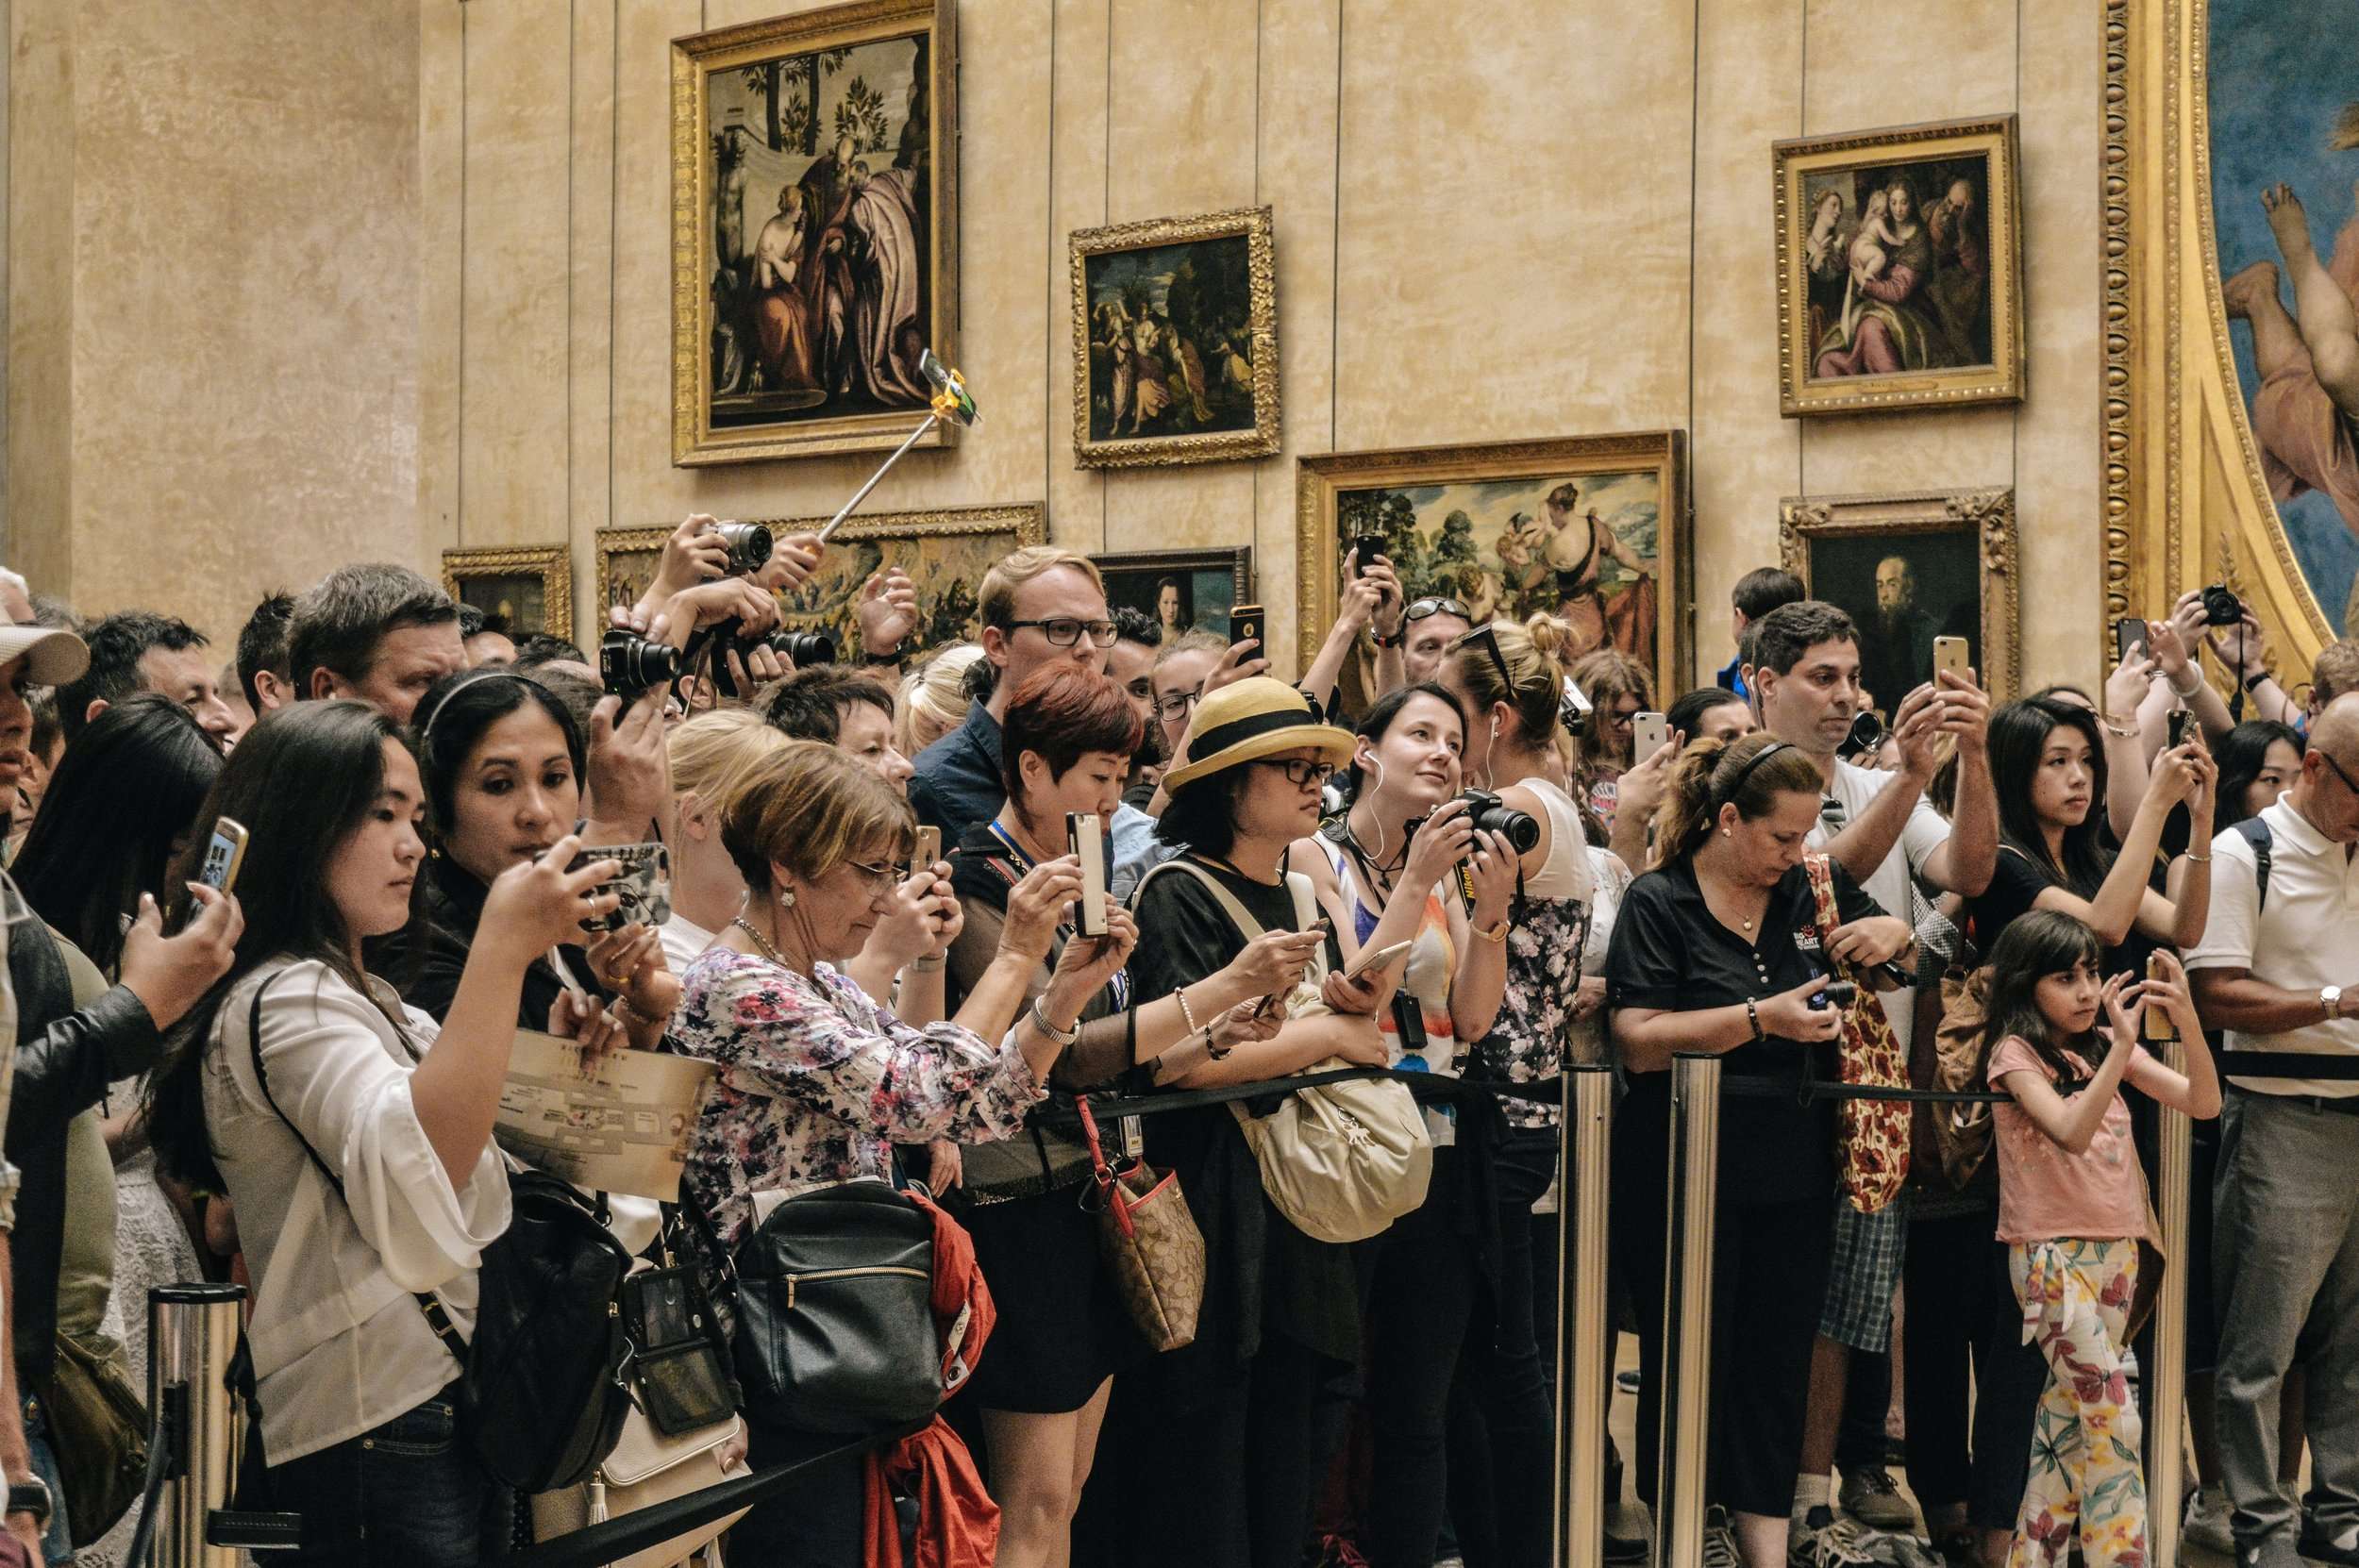 louvre museum paris crowds | traveler vs tourist